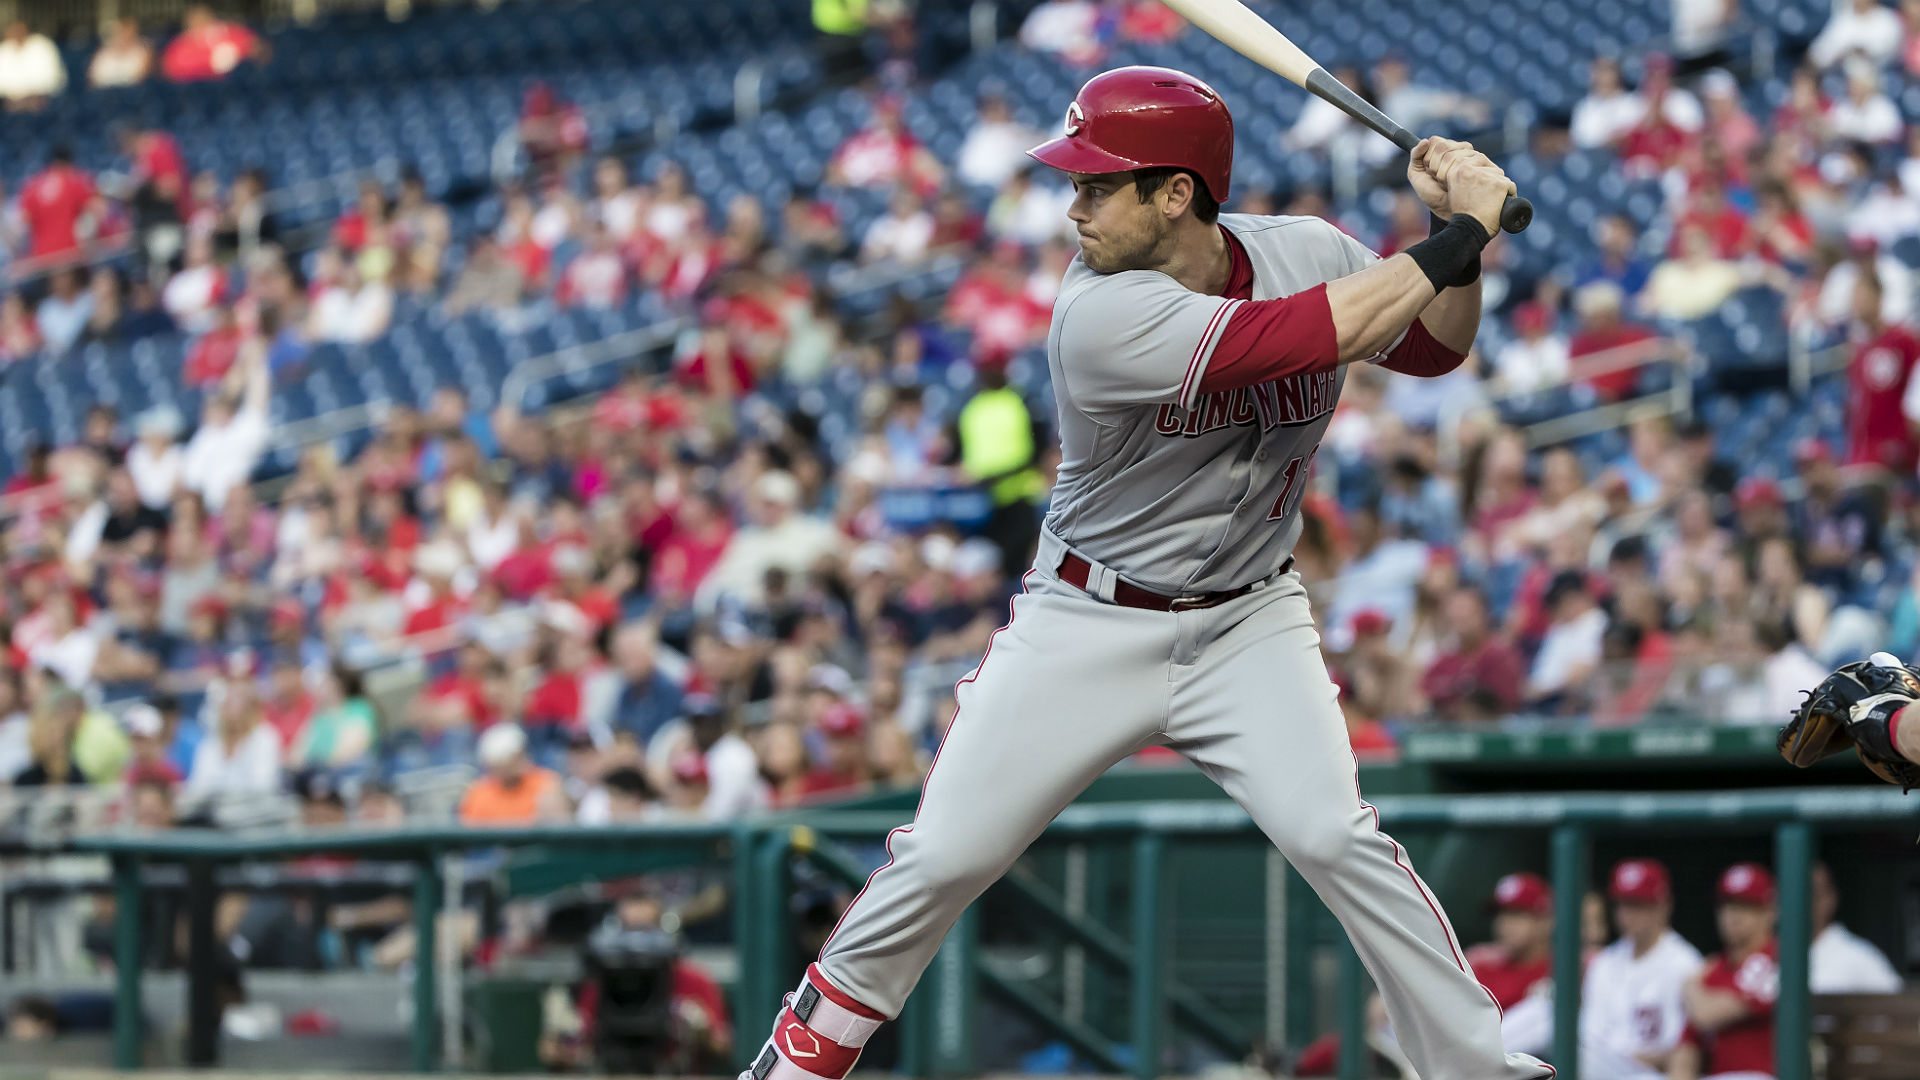 MLB trade news: Braves reacquire outfielder Preston Tucker from Reds